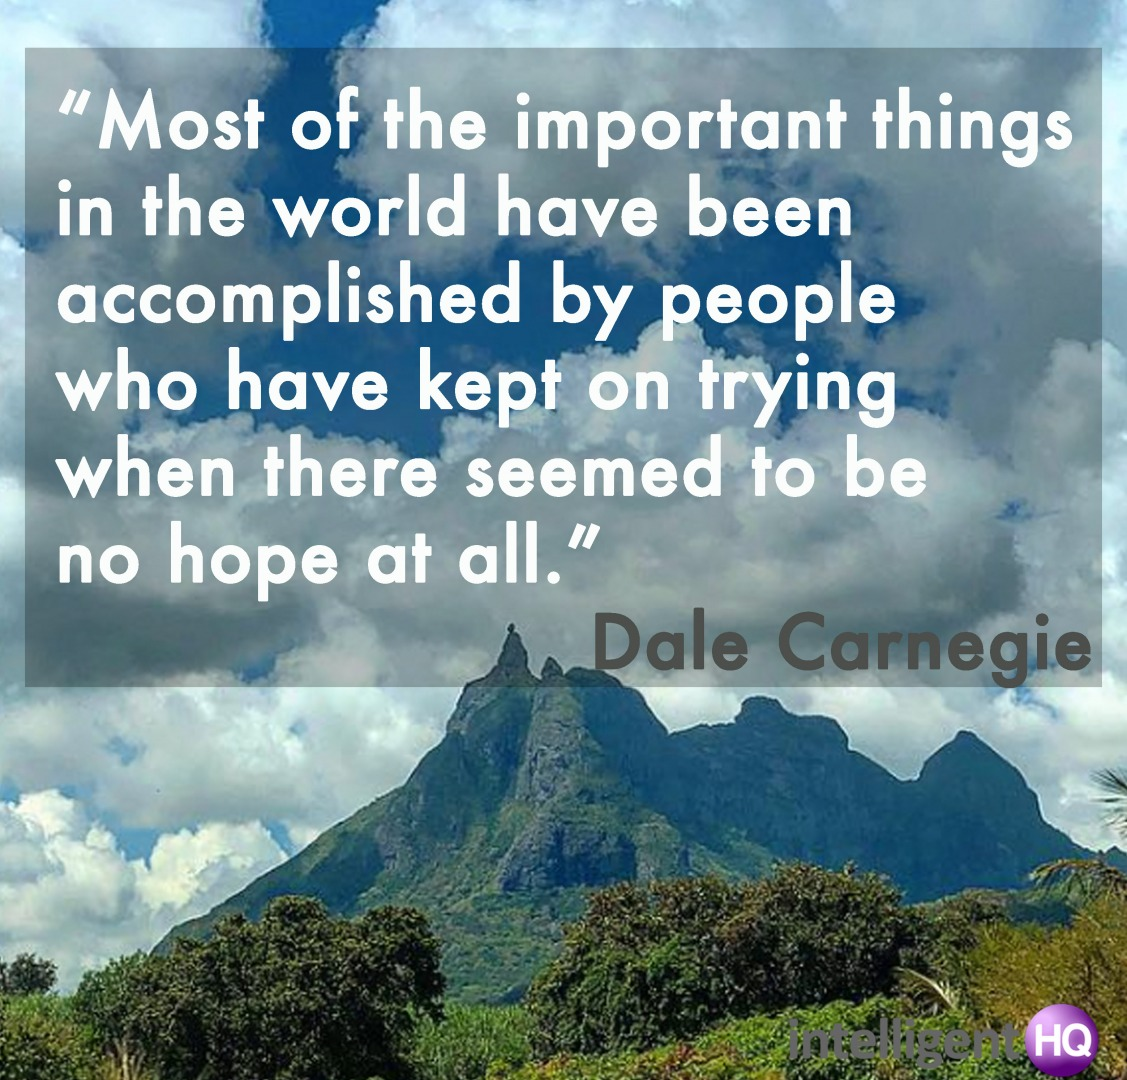 """Most of the important things in the world have been accomplished by people who have kept on trying when there seemed to be no hope at all."" Dale Carnegie Intelligenthq"